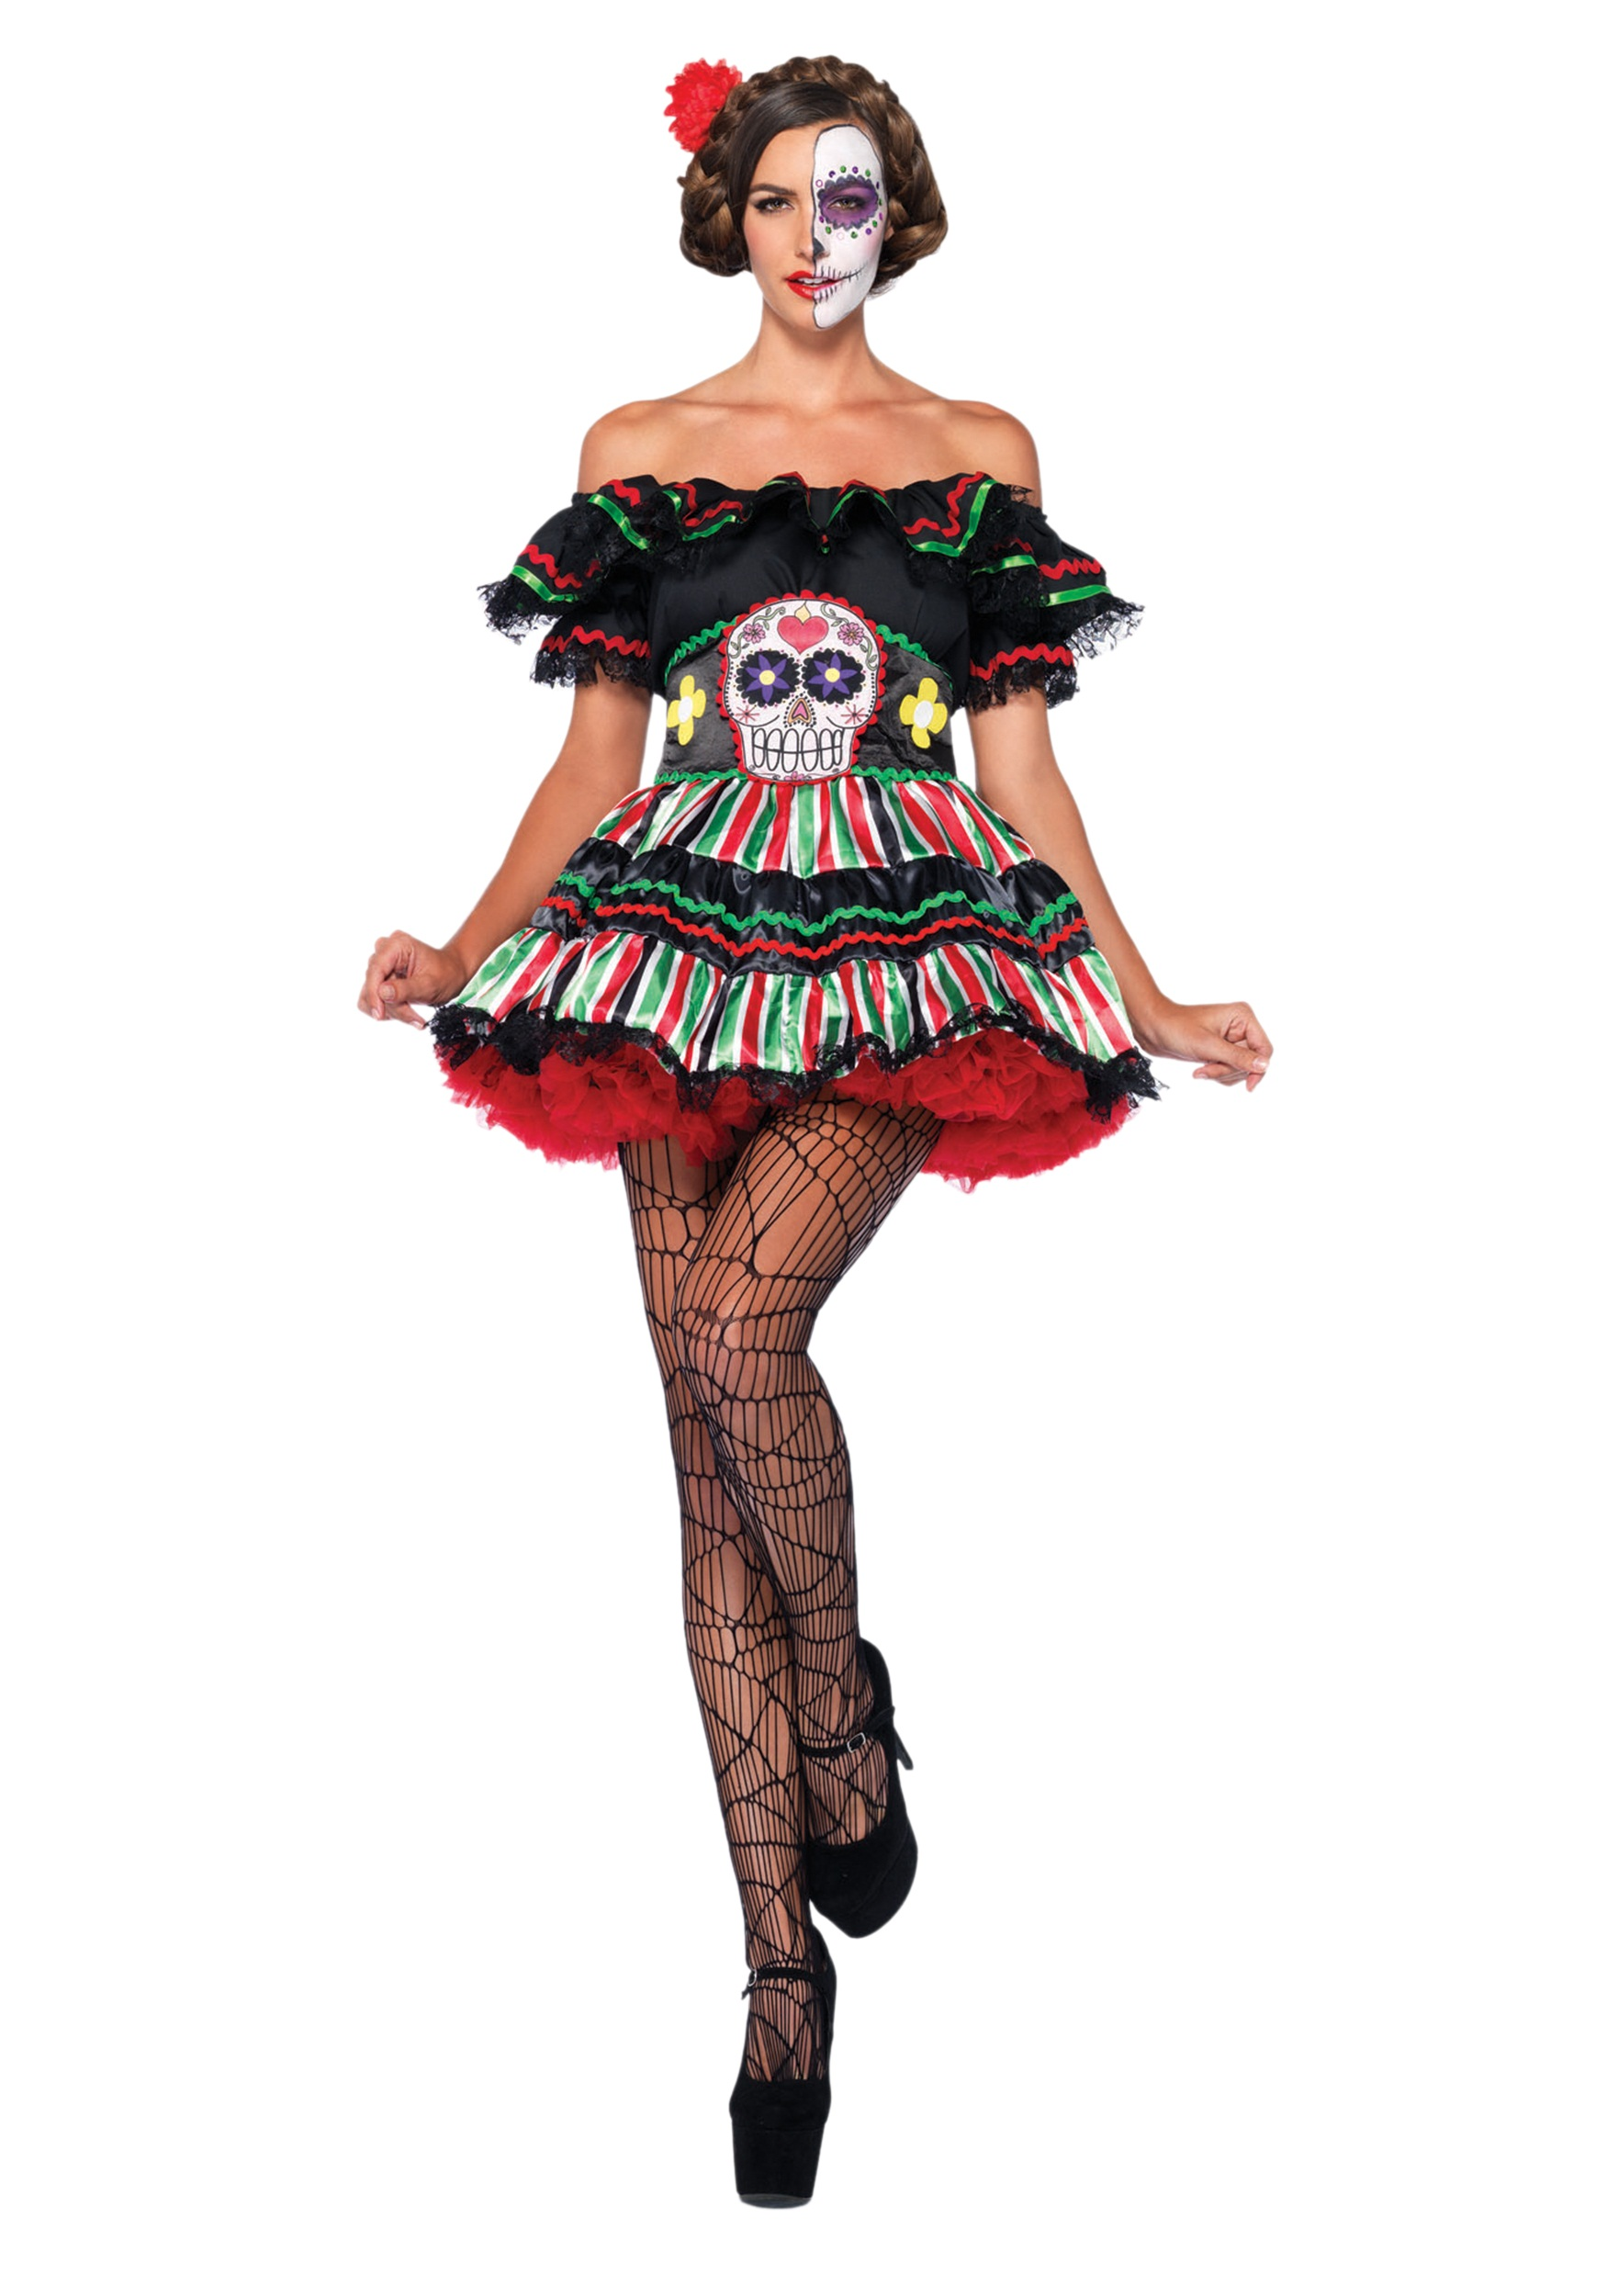 Scary Doll Costumes For Halloween - HalloweenCostumes.com